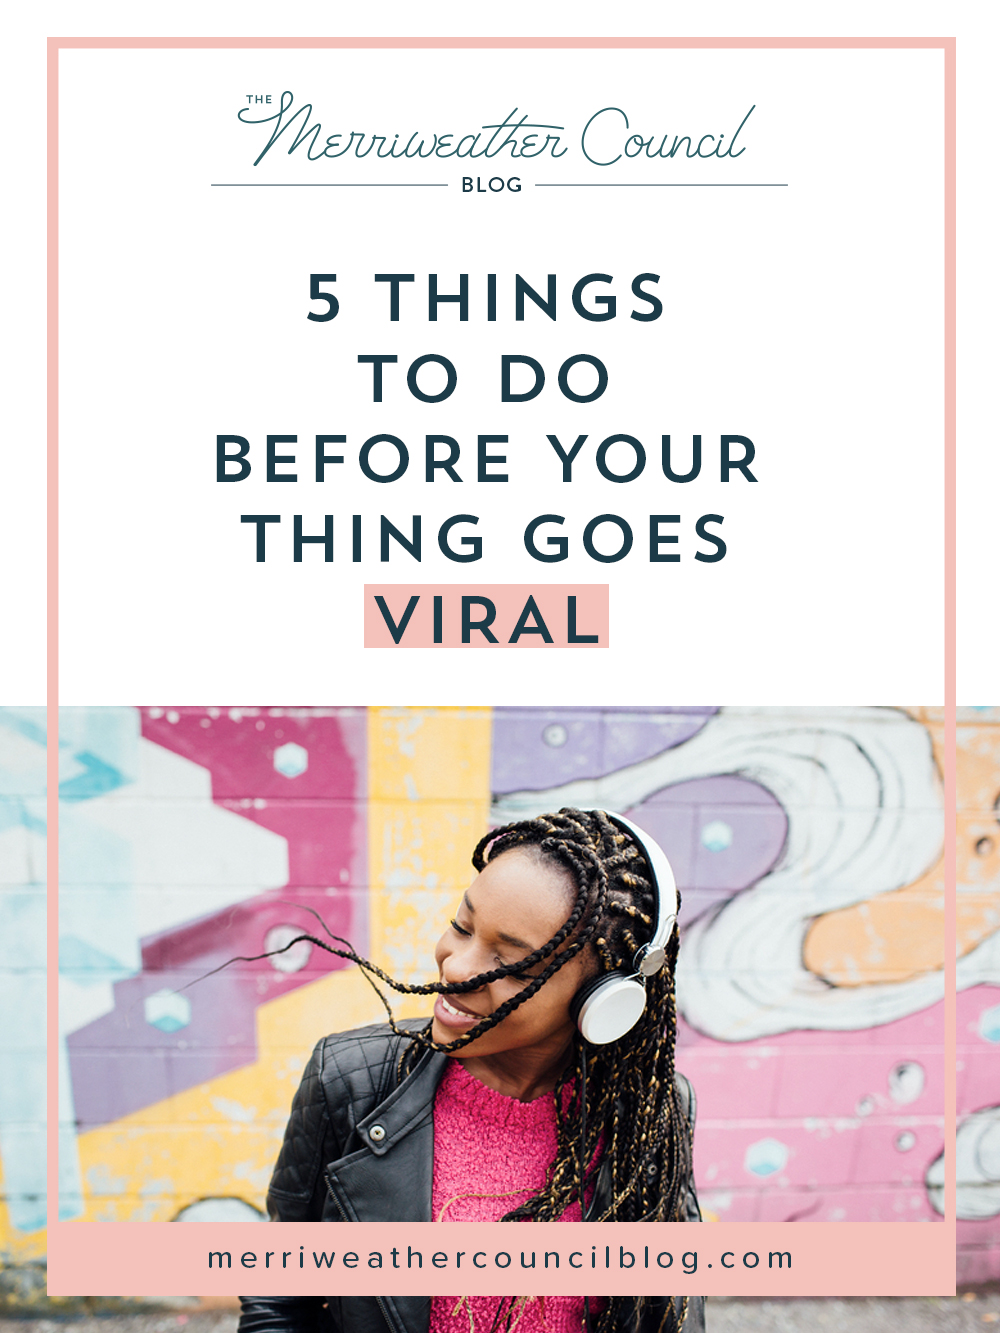 5 things to do before your thing goes viral | the merriweather council blog